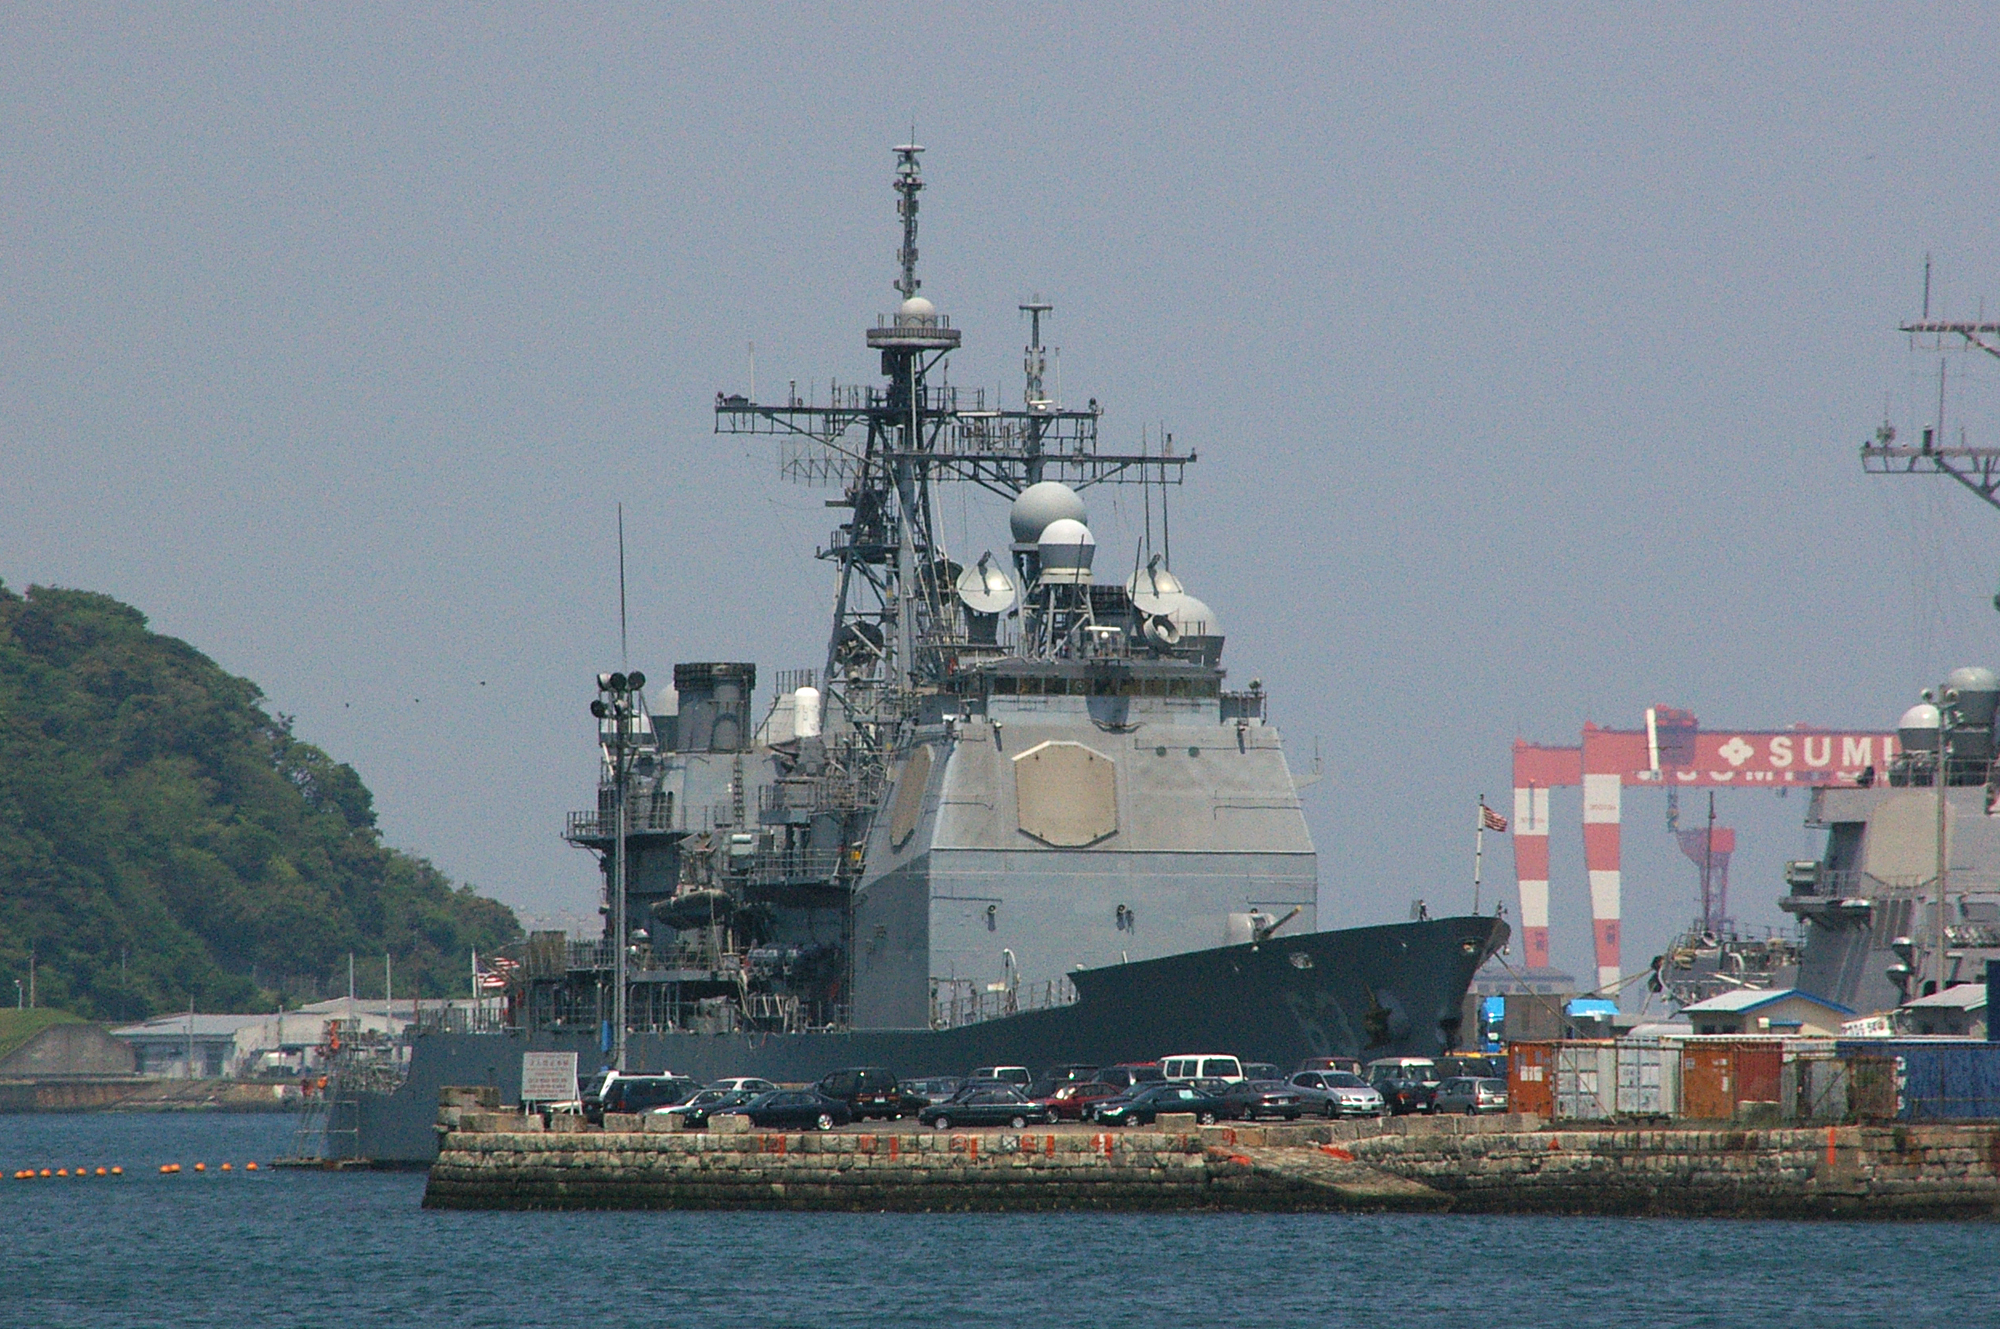 http://upload.wikimedia.org/wikipedia/commons/4/4f/USS_Cowpens_(CG-63).jpg